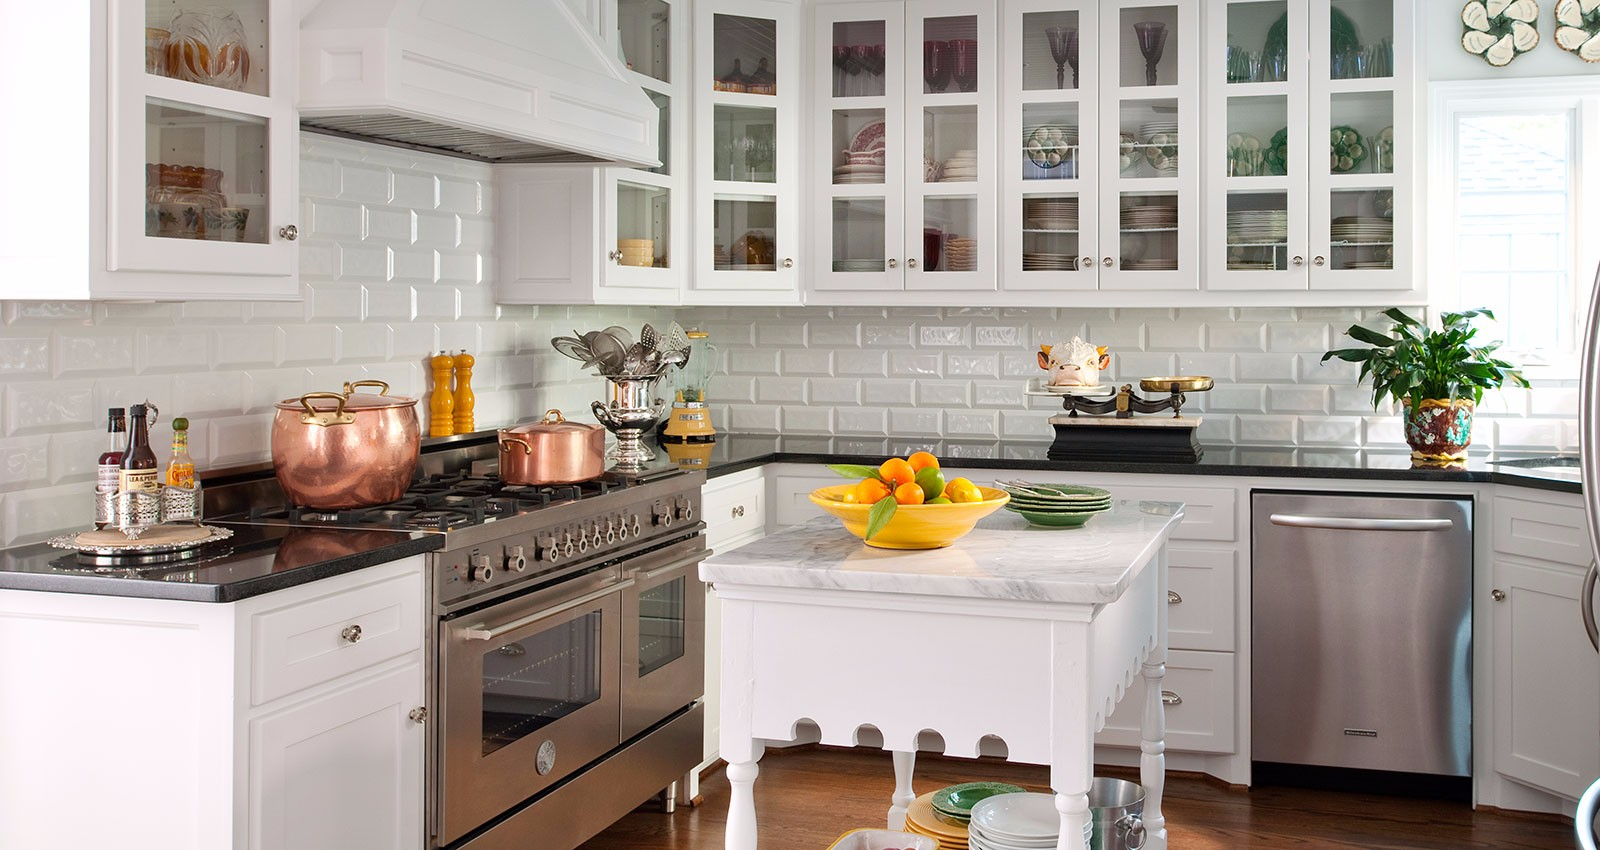 Pam Kelley Design - Kitchens